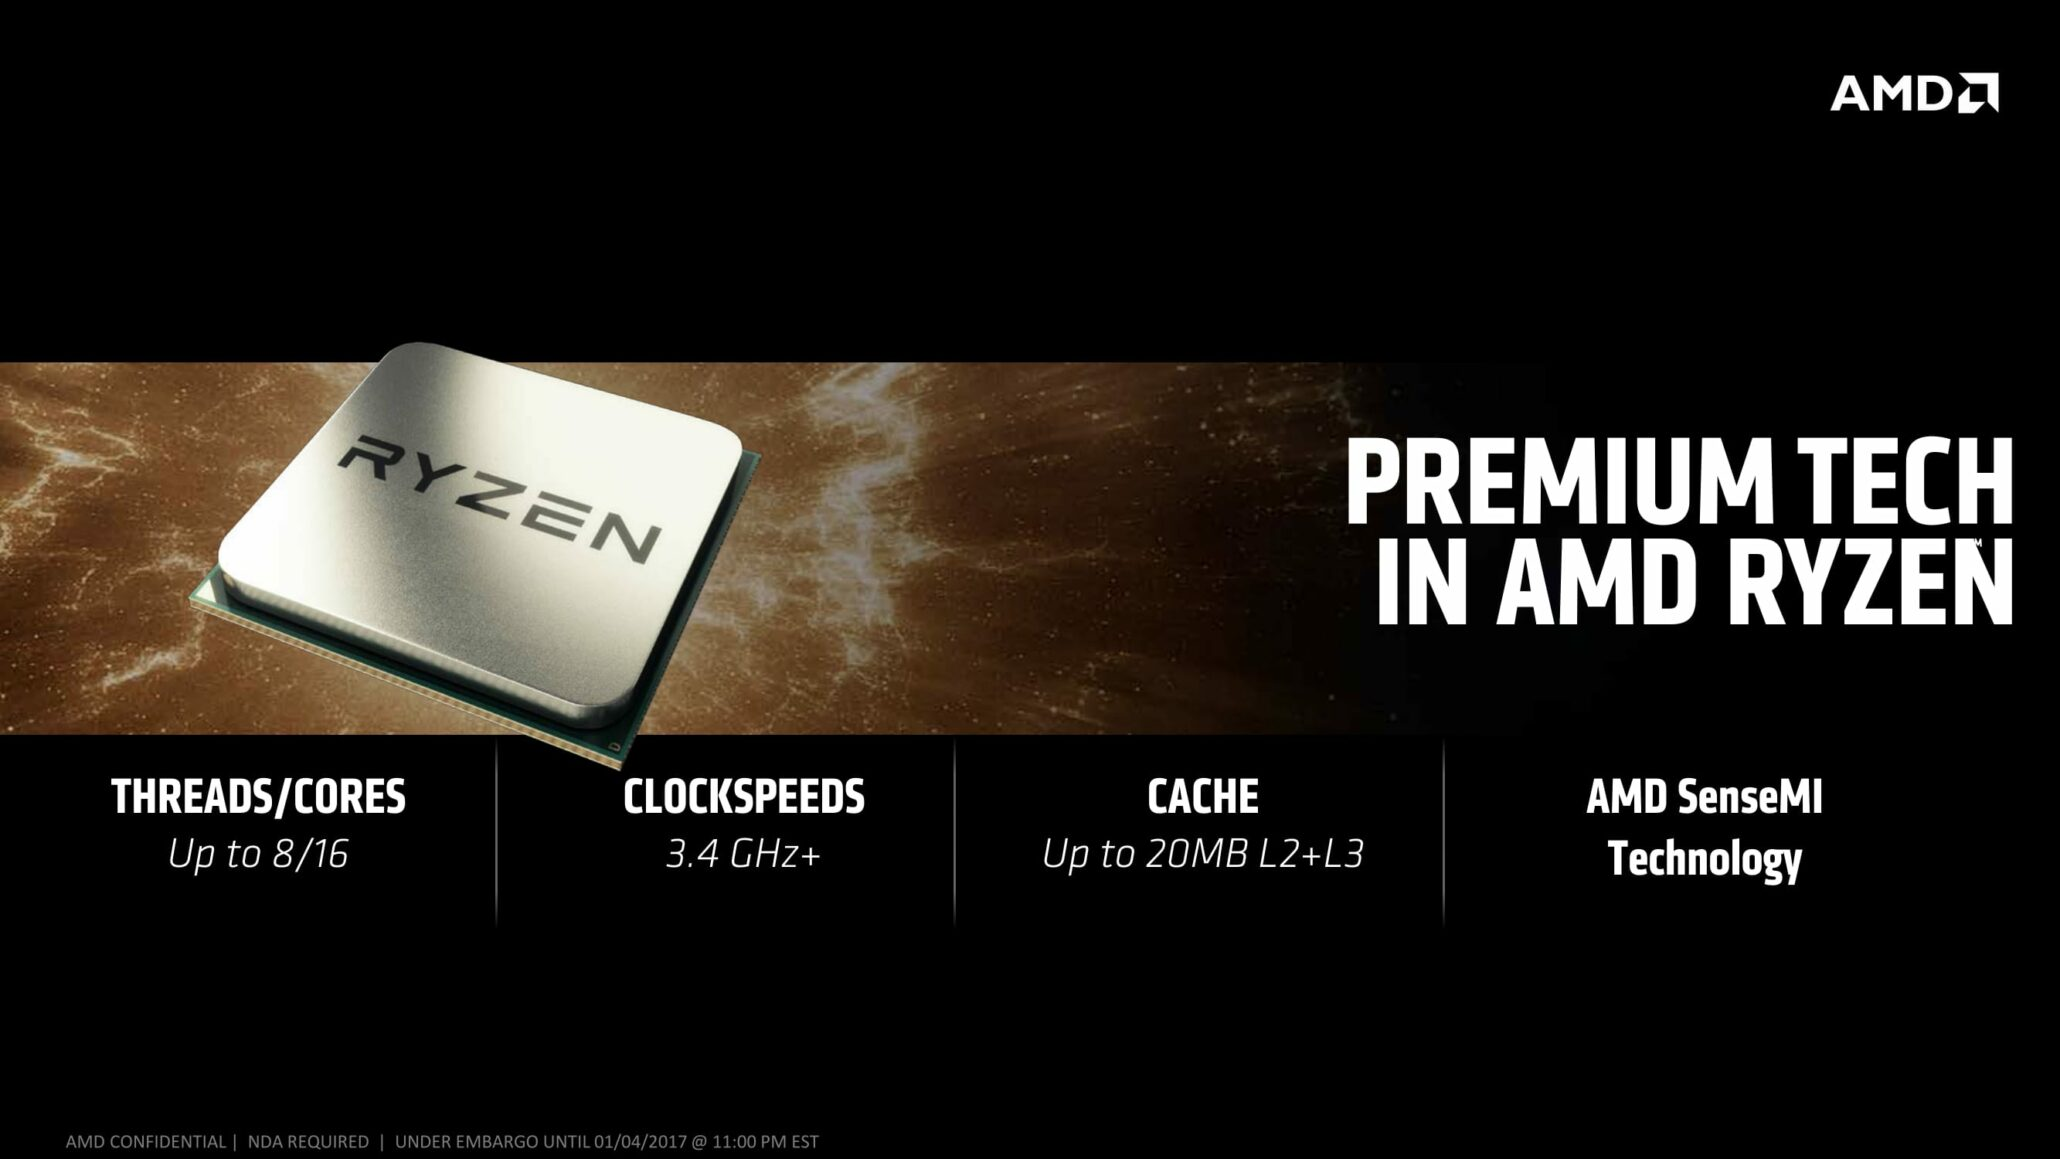 AMD Ryzen Processors May Not Include 6 Core Variants, Up To $700 US